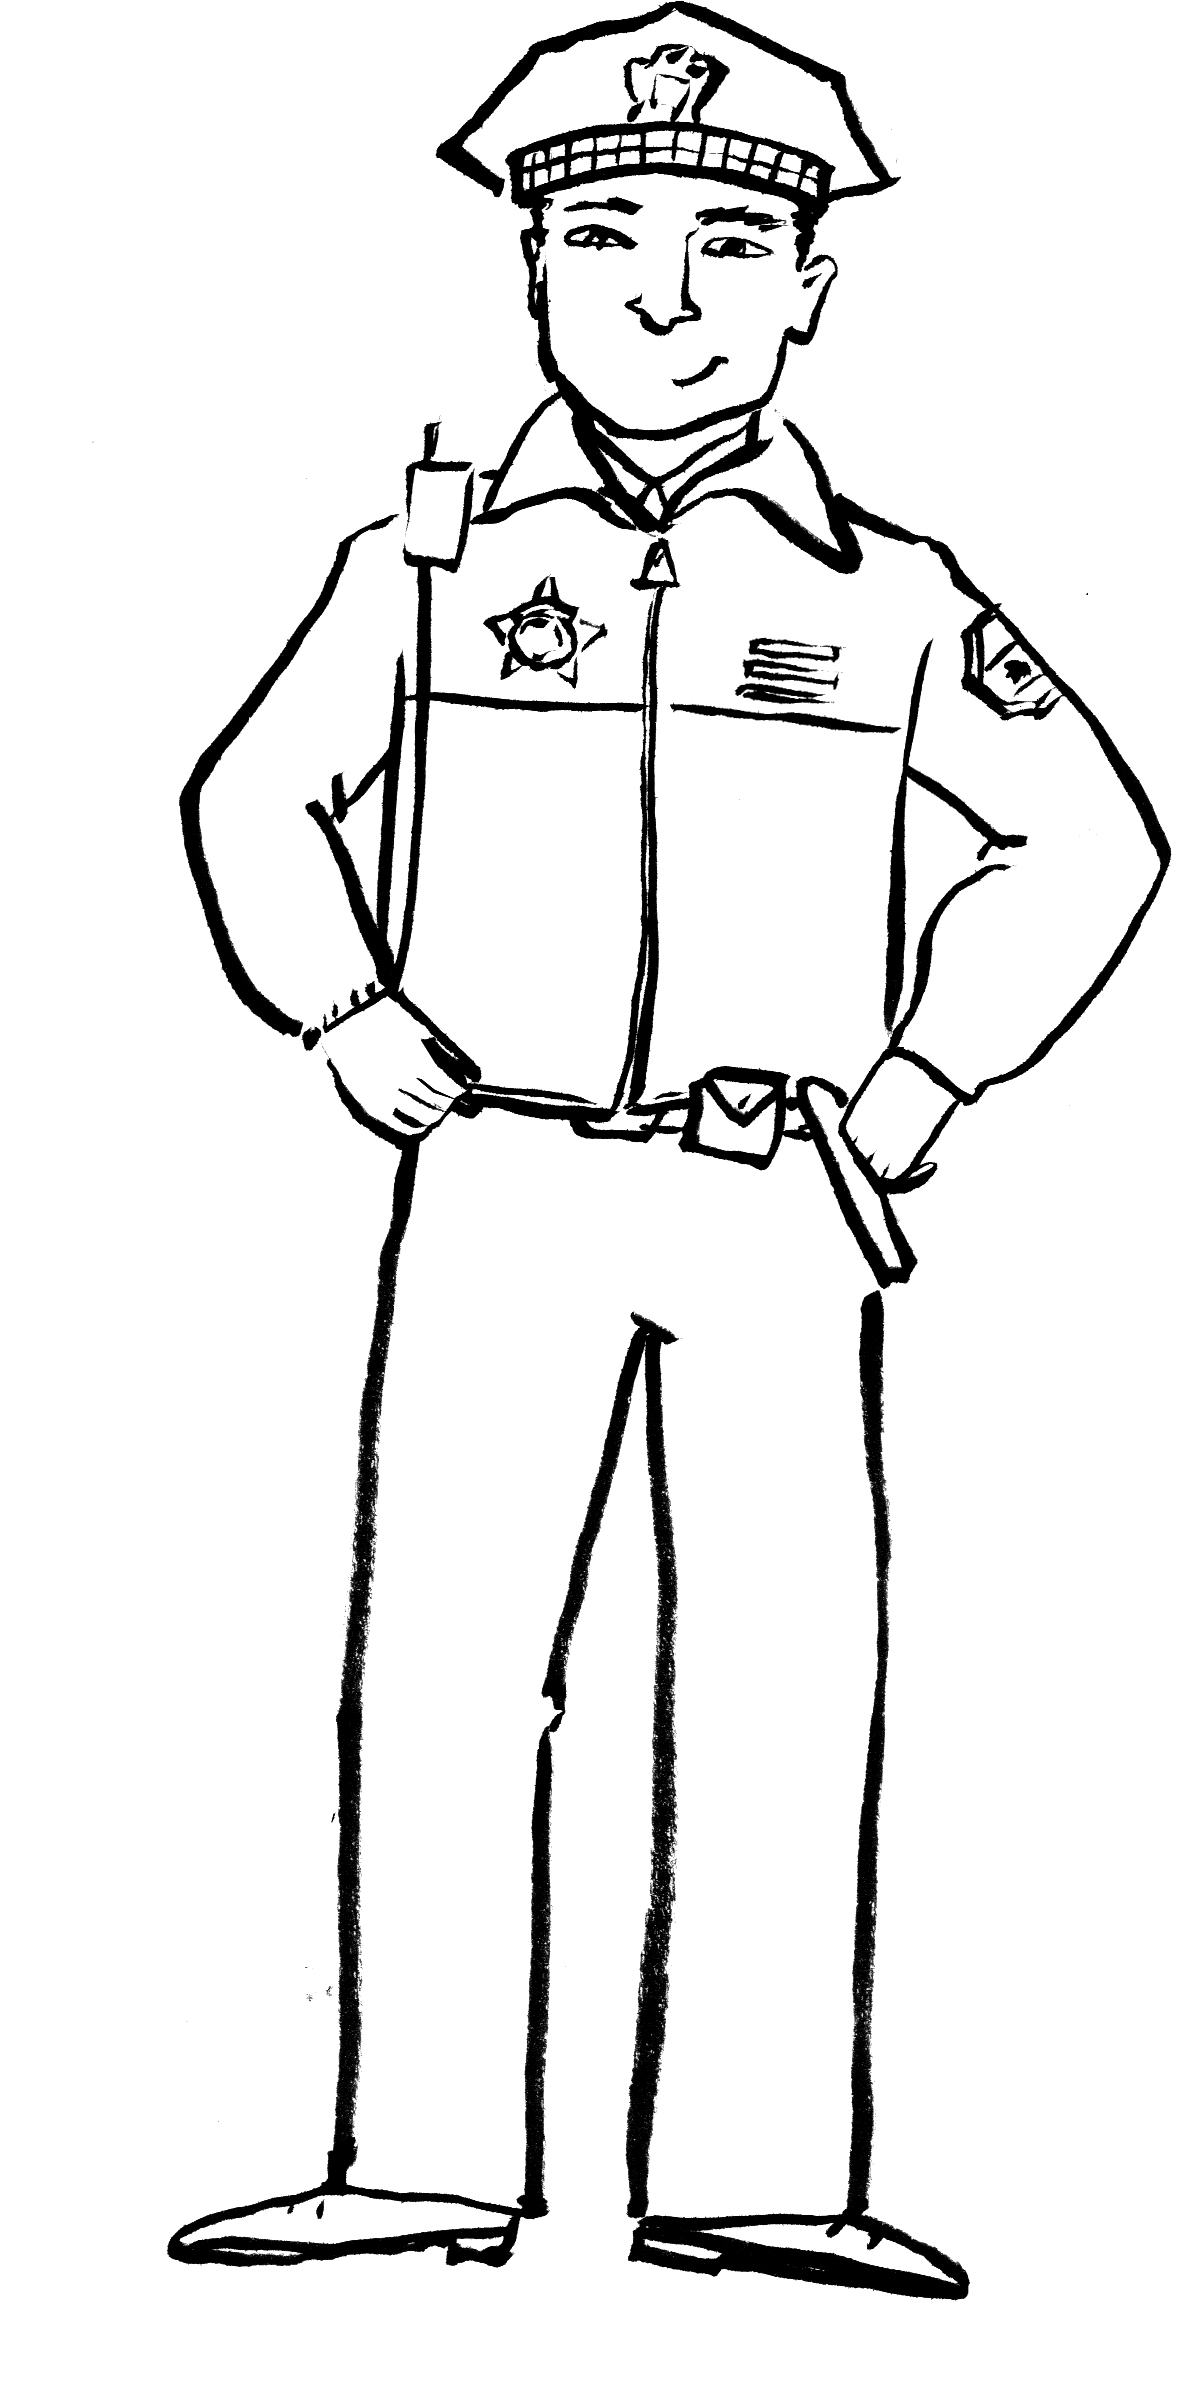 policeman coloring book pages - photo#6